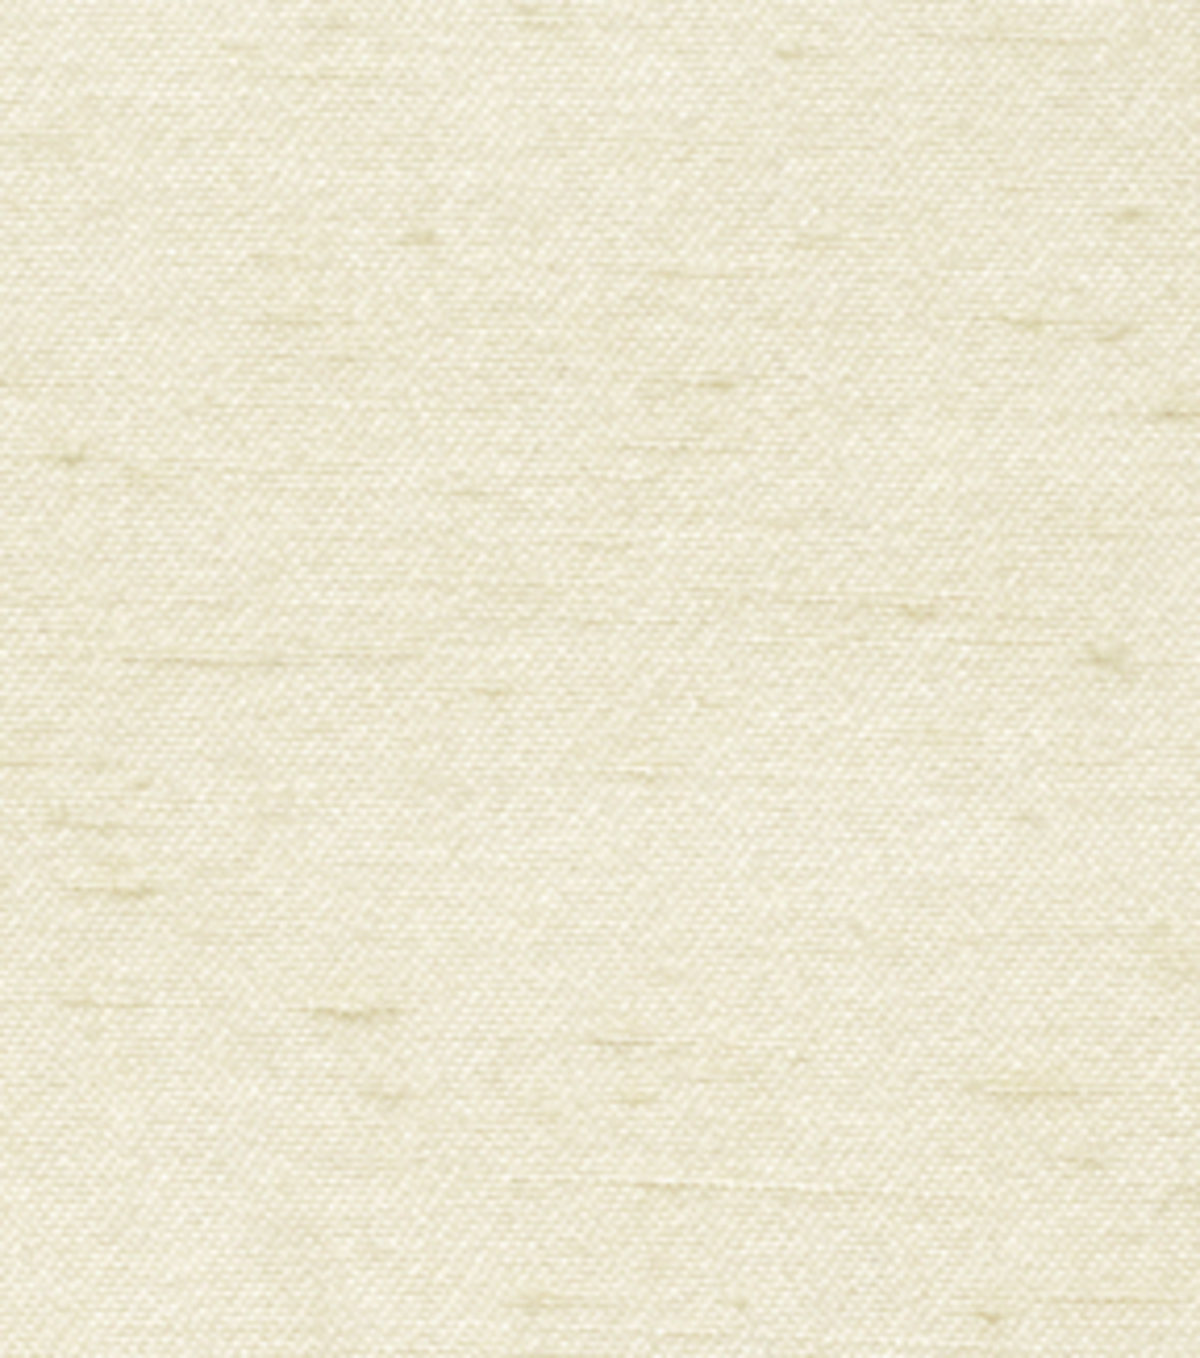 Home Decor 8\u0022x8\u0022 Fabric Swatch-Signature Series Antique Satin Beach